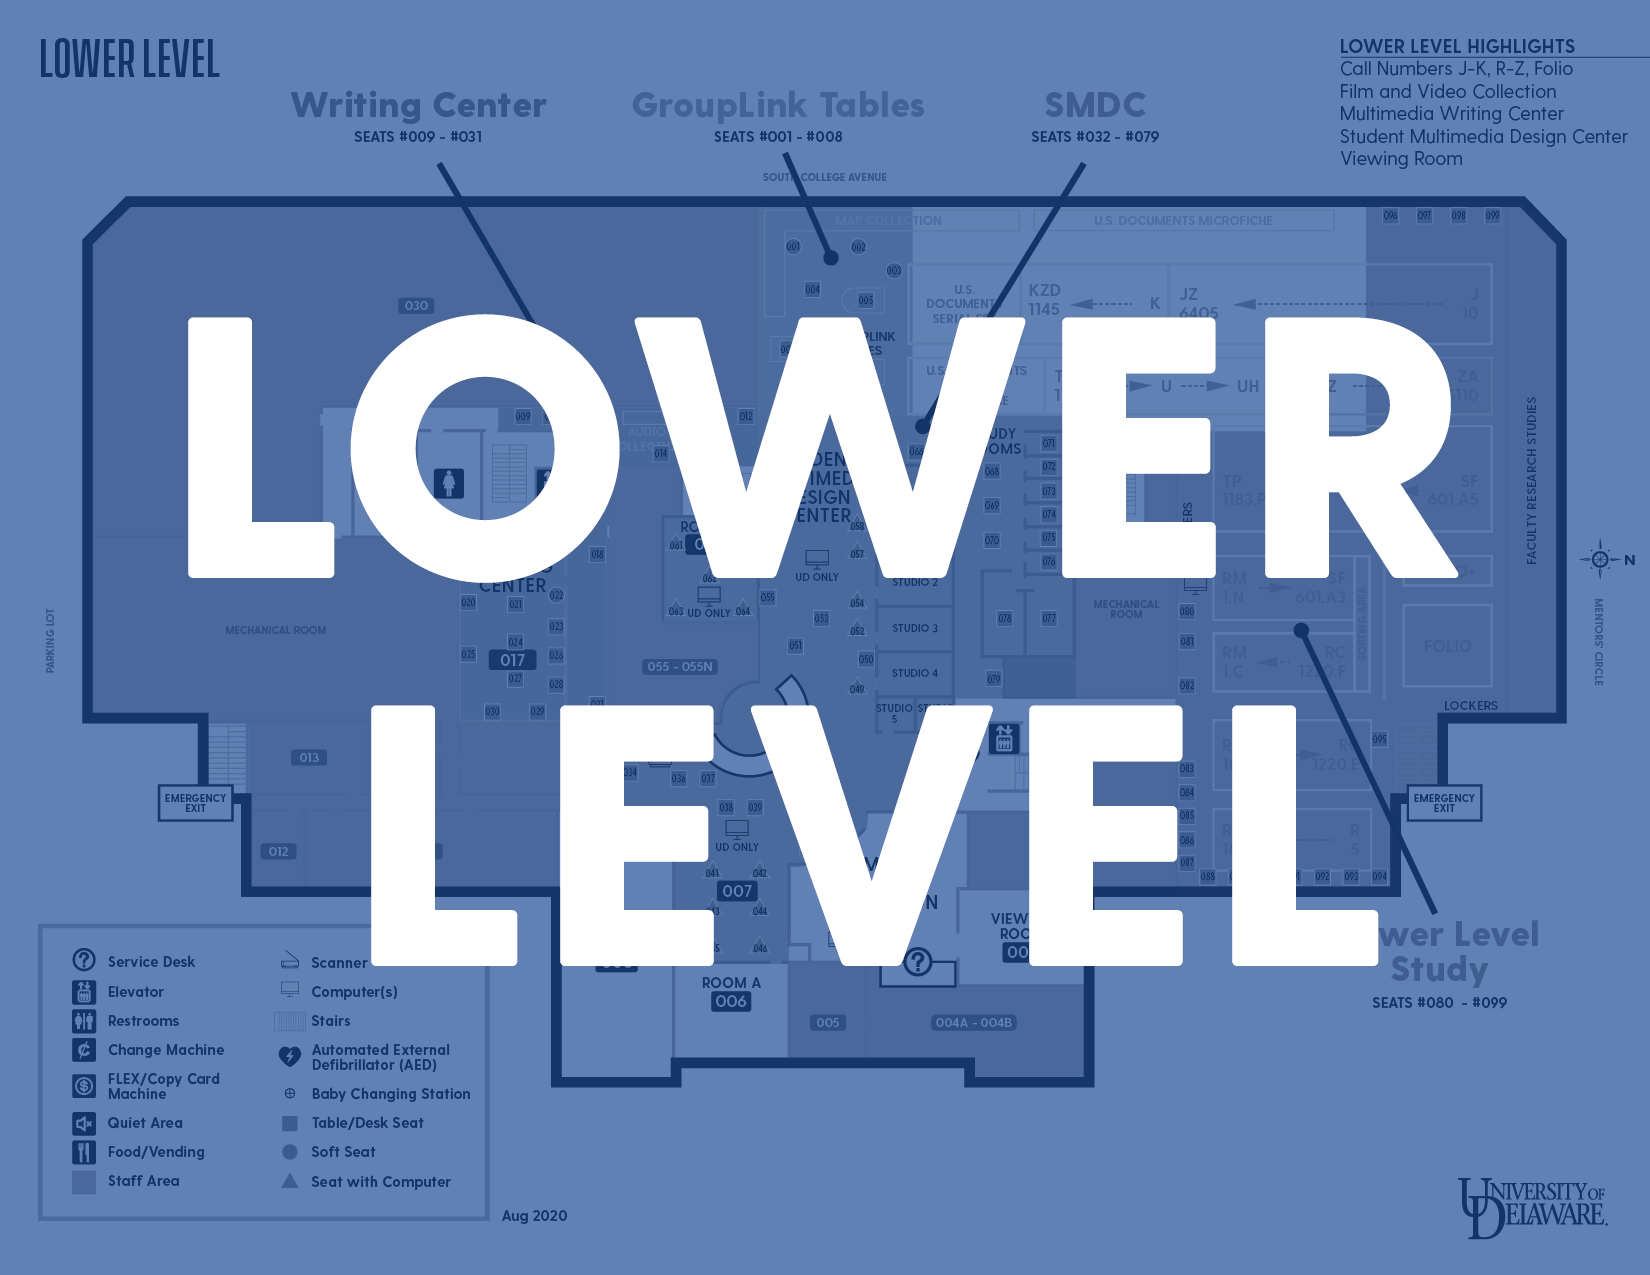 Lower Level Map